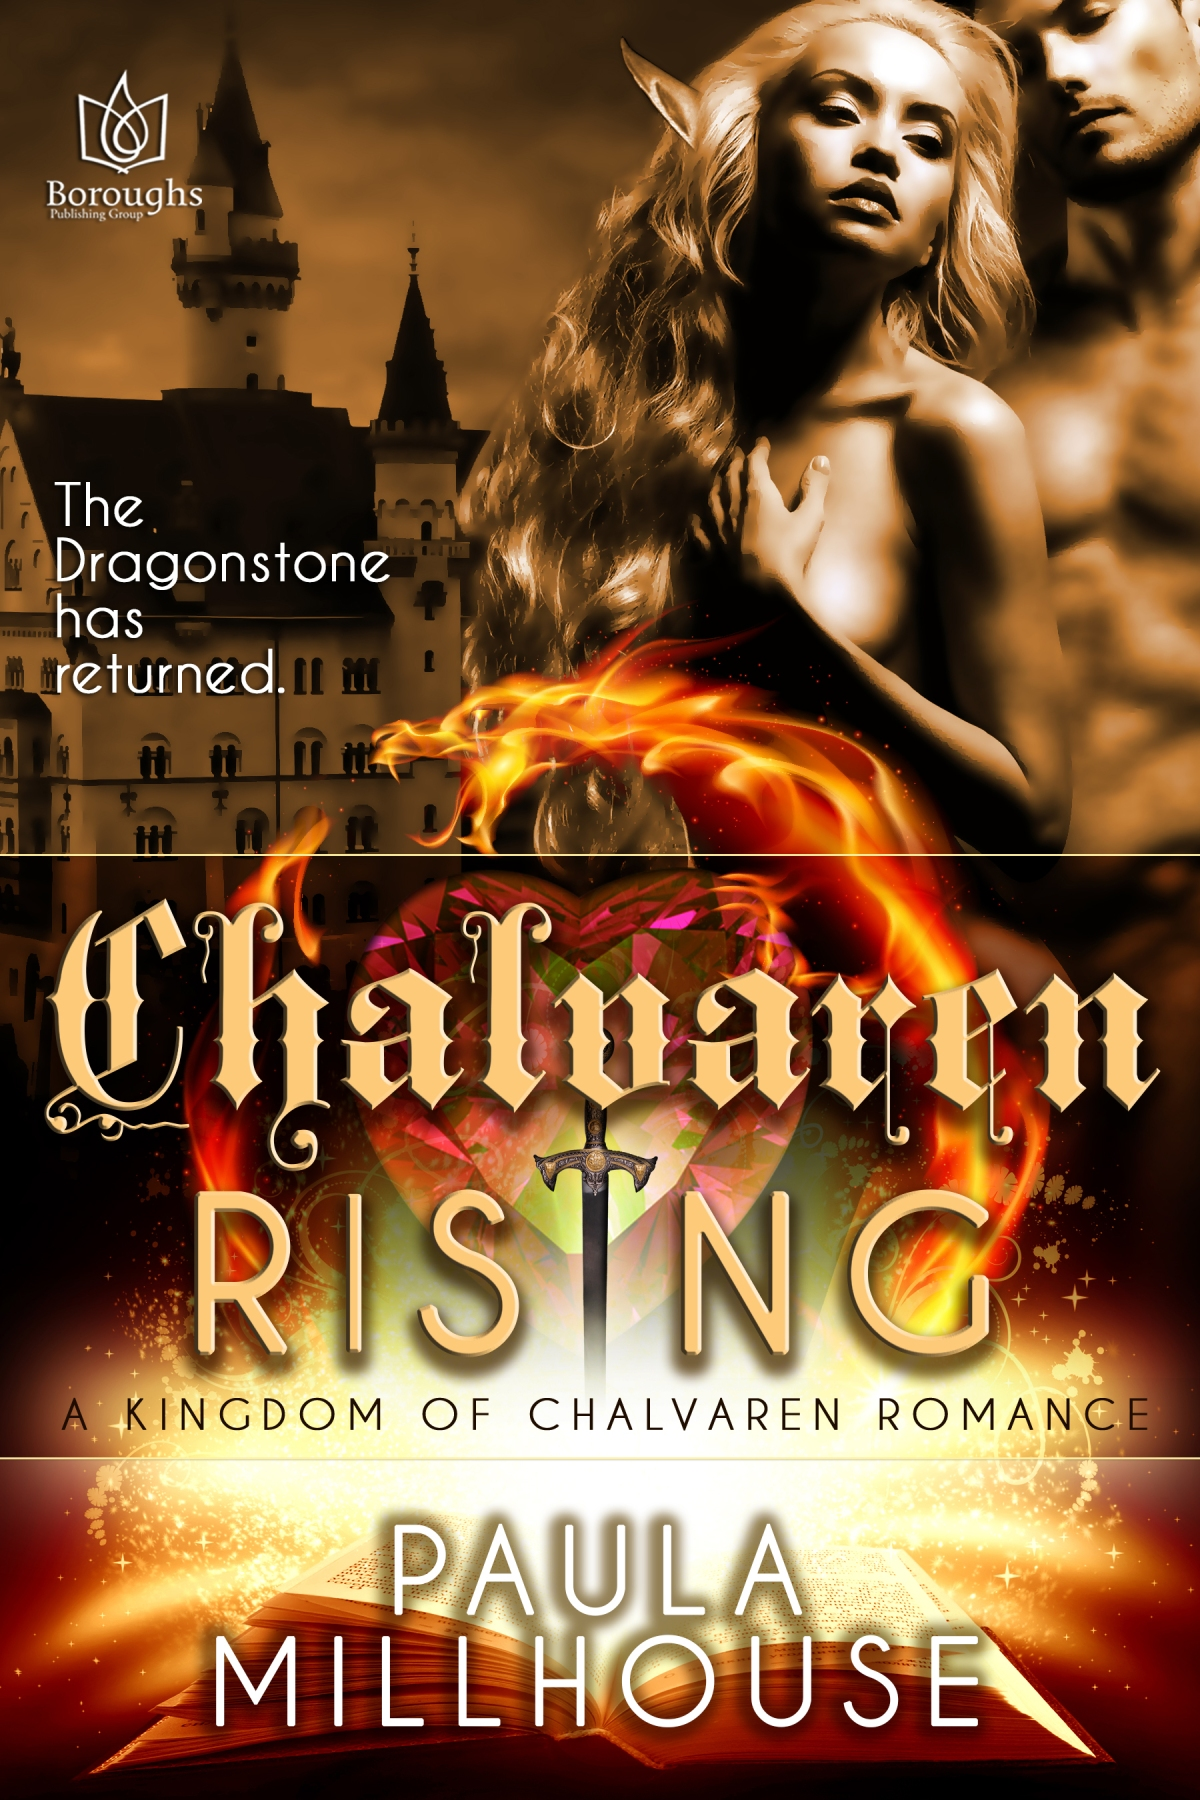 Win the magic of Chalvaren Rising by Paula Millhouse #Goodreads paperback #giveaway @pmillhouse #ASMSG #PNR #Fantasy #Romance & #Dragons